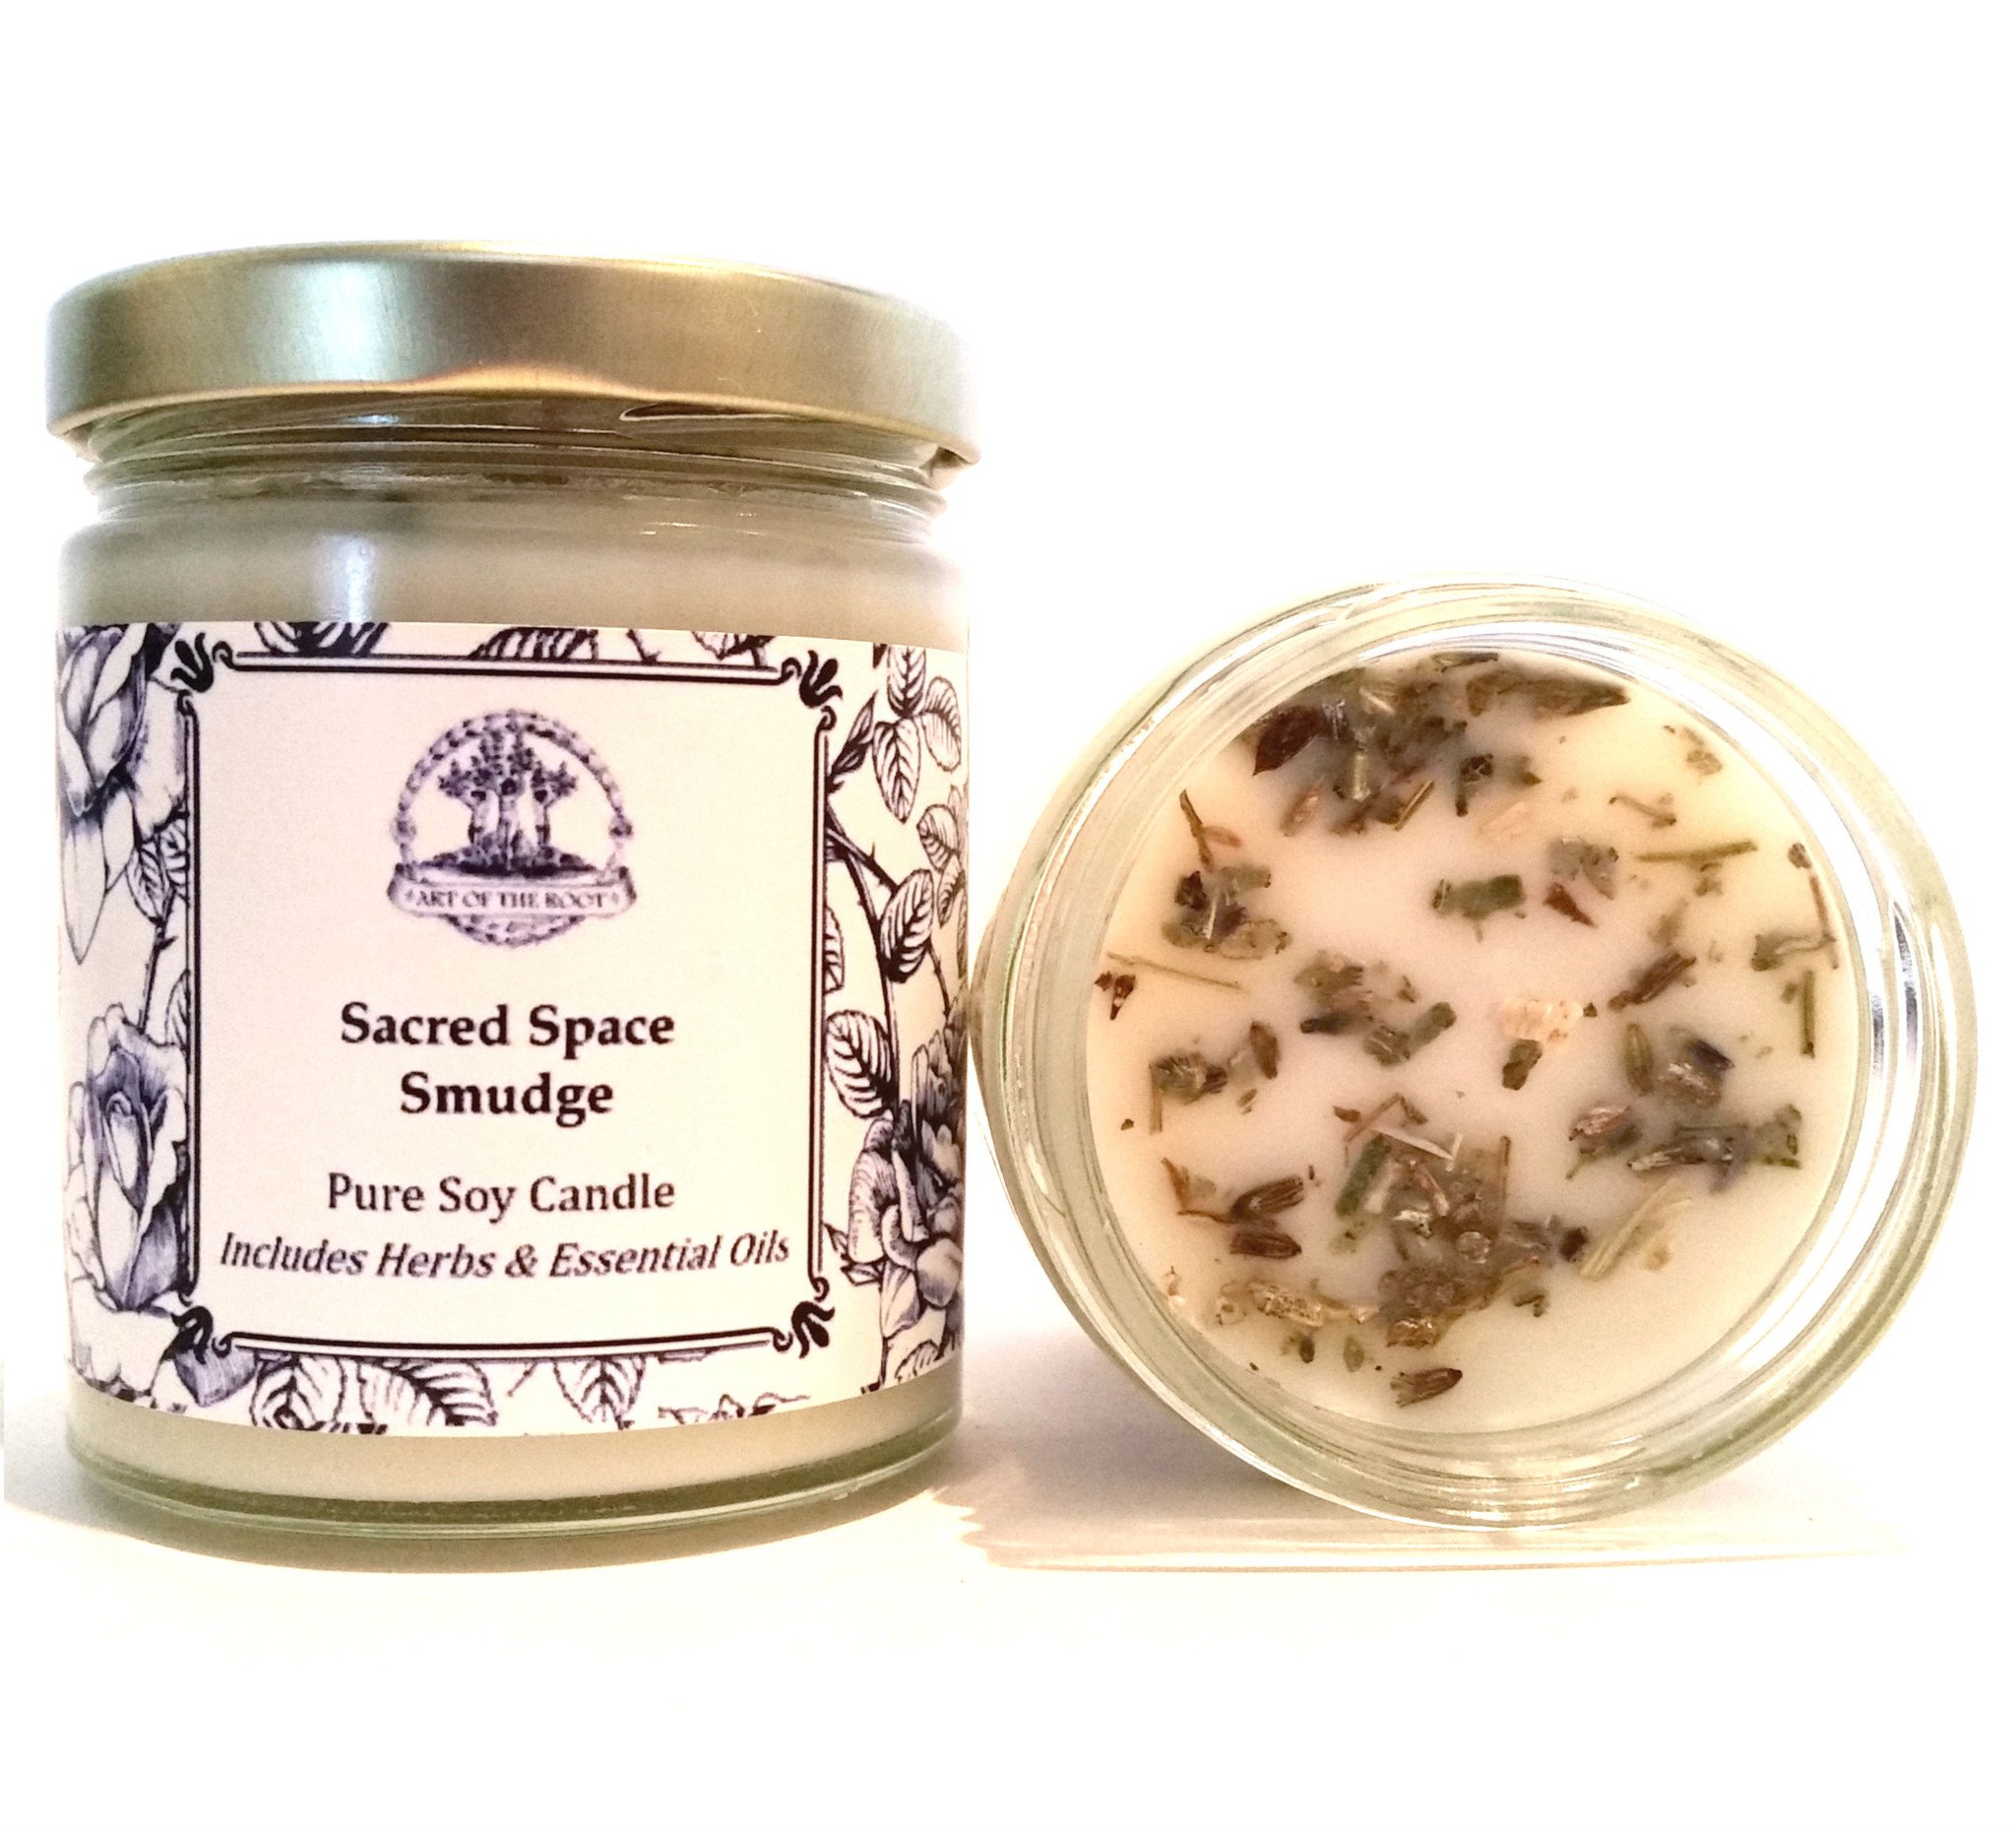 Art of the Root Sacred Space Soy Herbal Smudge Candle 8 oz Lavender, Sage & Cedar Purification, Negative Energy & Serenity